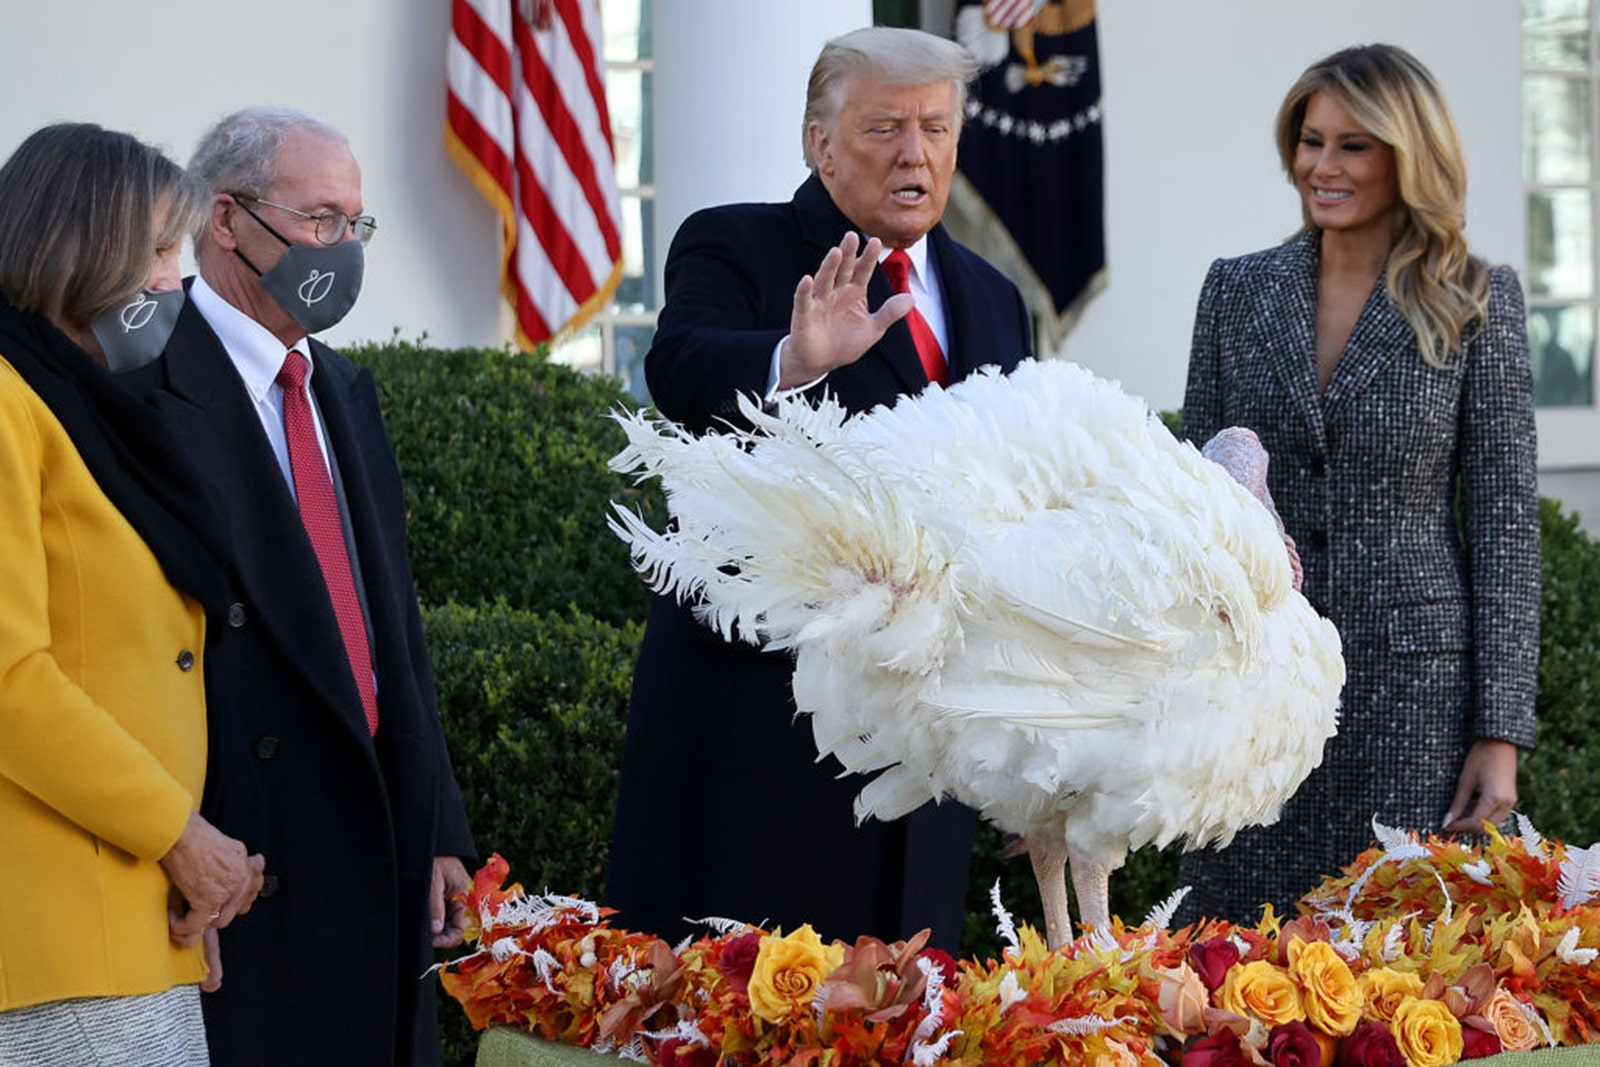 'That is a lucky bird': Trump pardons Corn, the Thanksgiving turkey